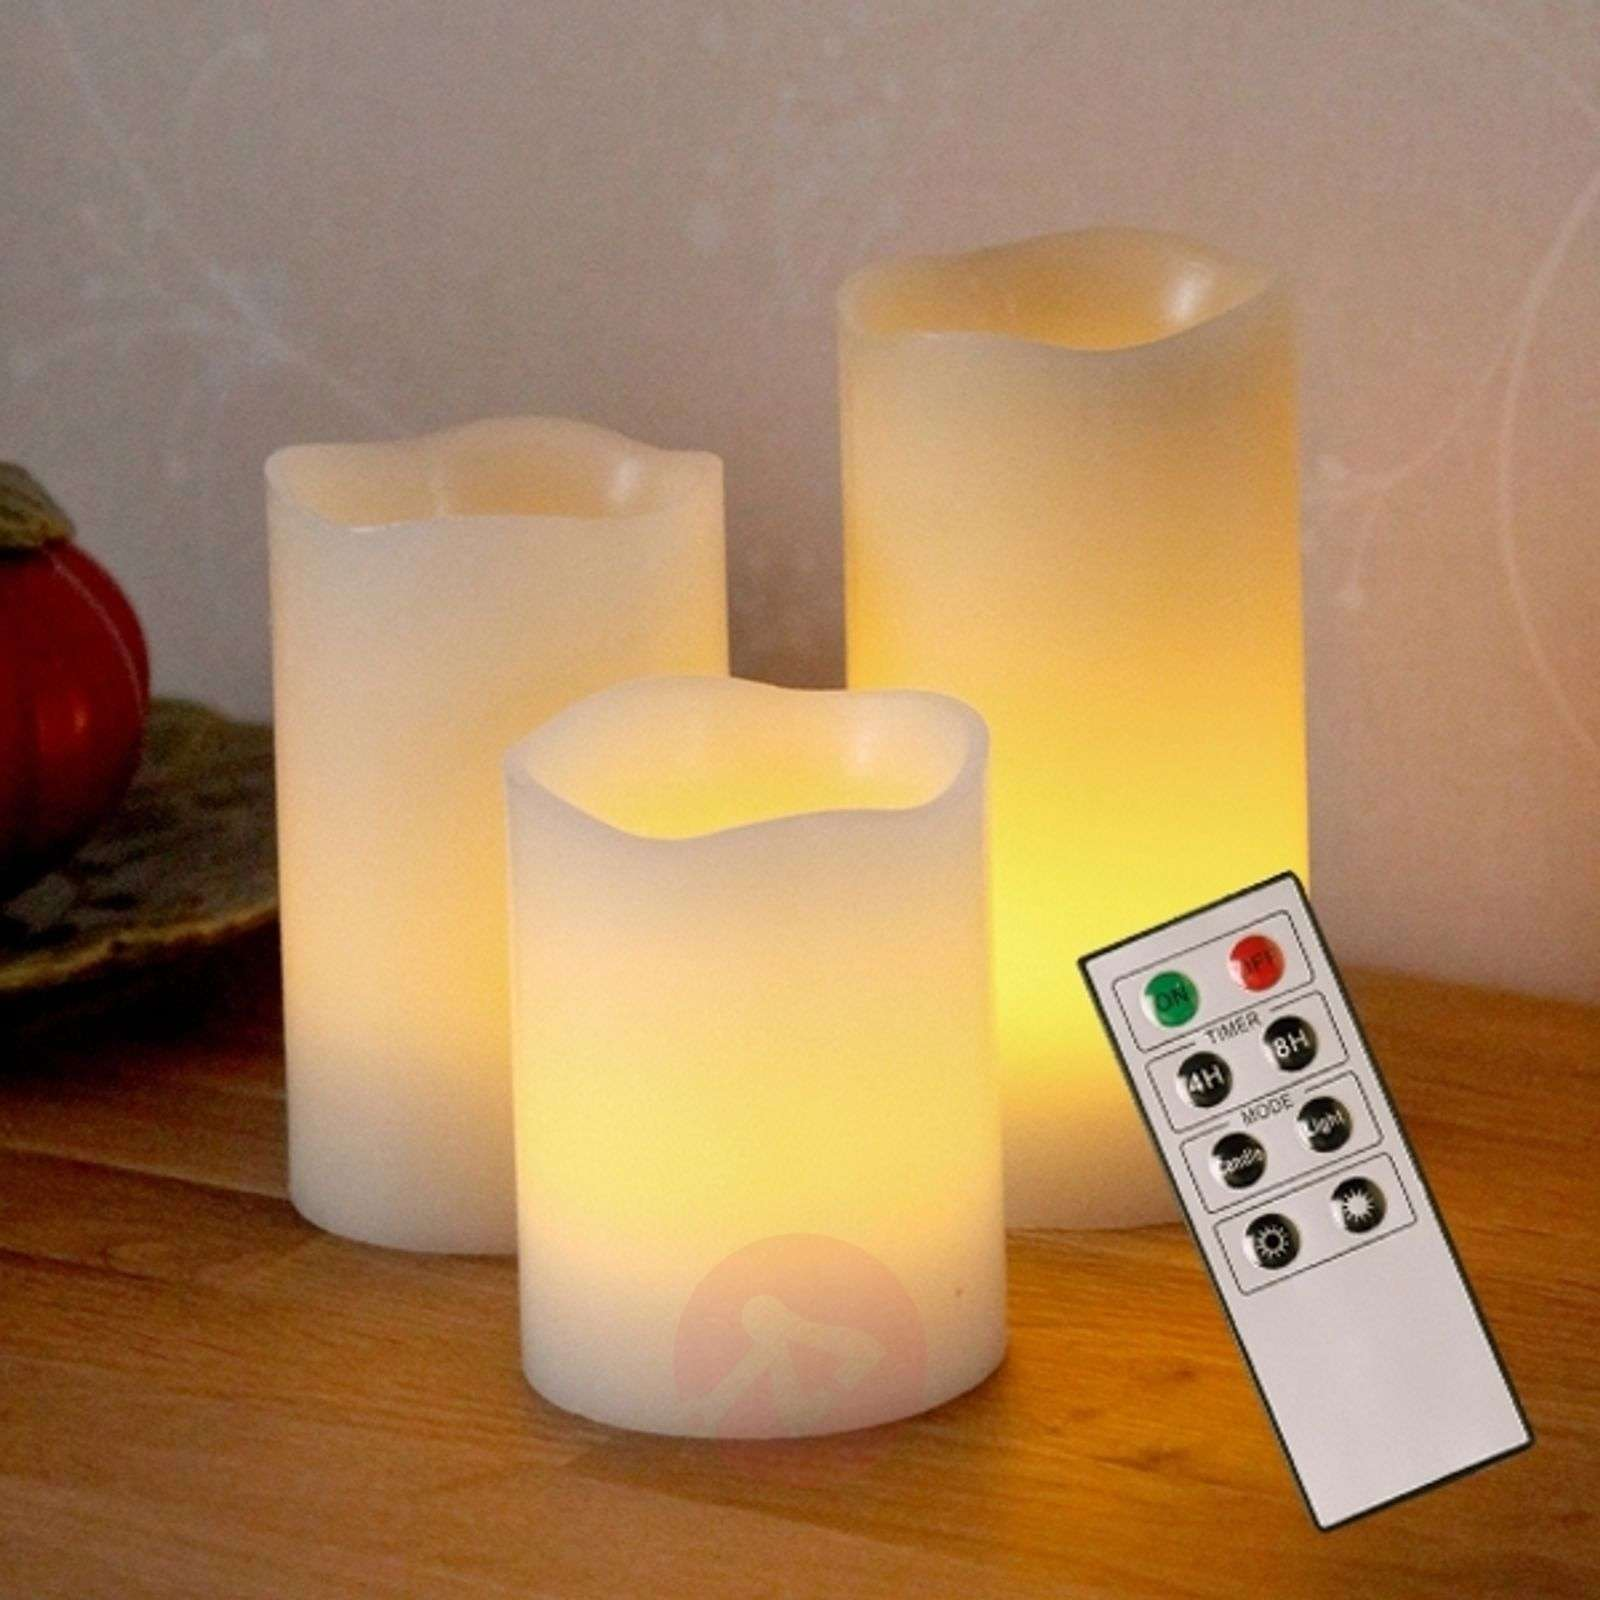 LED decorative candle Wax made of wax-1522391-01